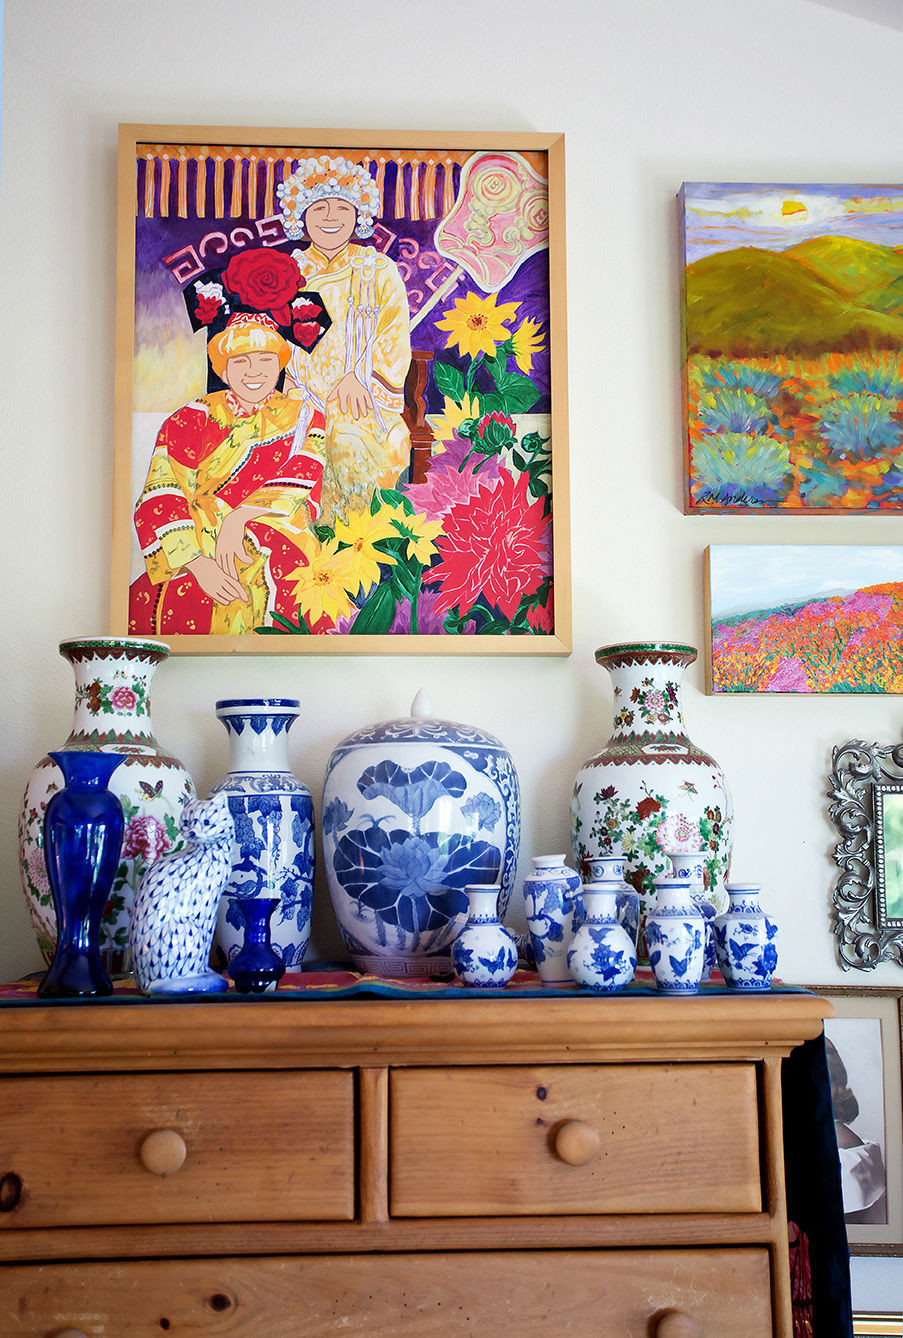 old oriental vases of hillside haven ann stohls timeless custom home home and garden within hillside haven ann stohls timeless custom home home and garden yakimaherald com